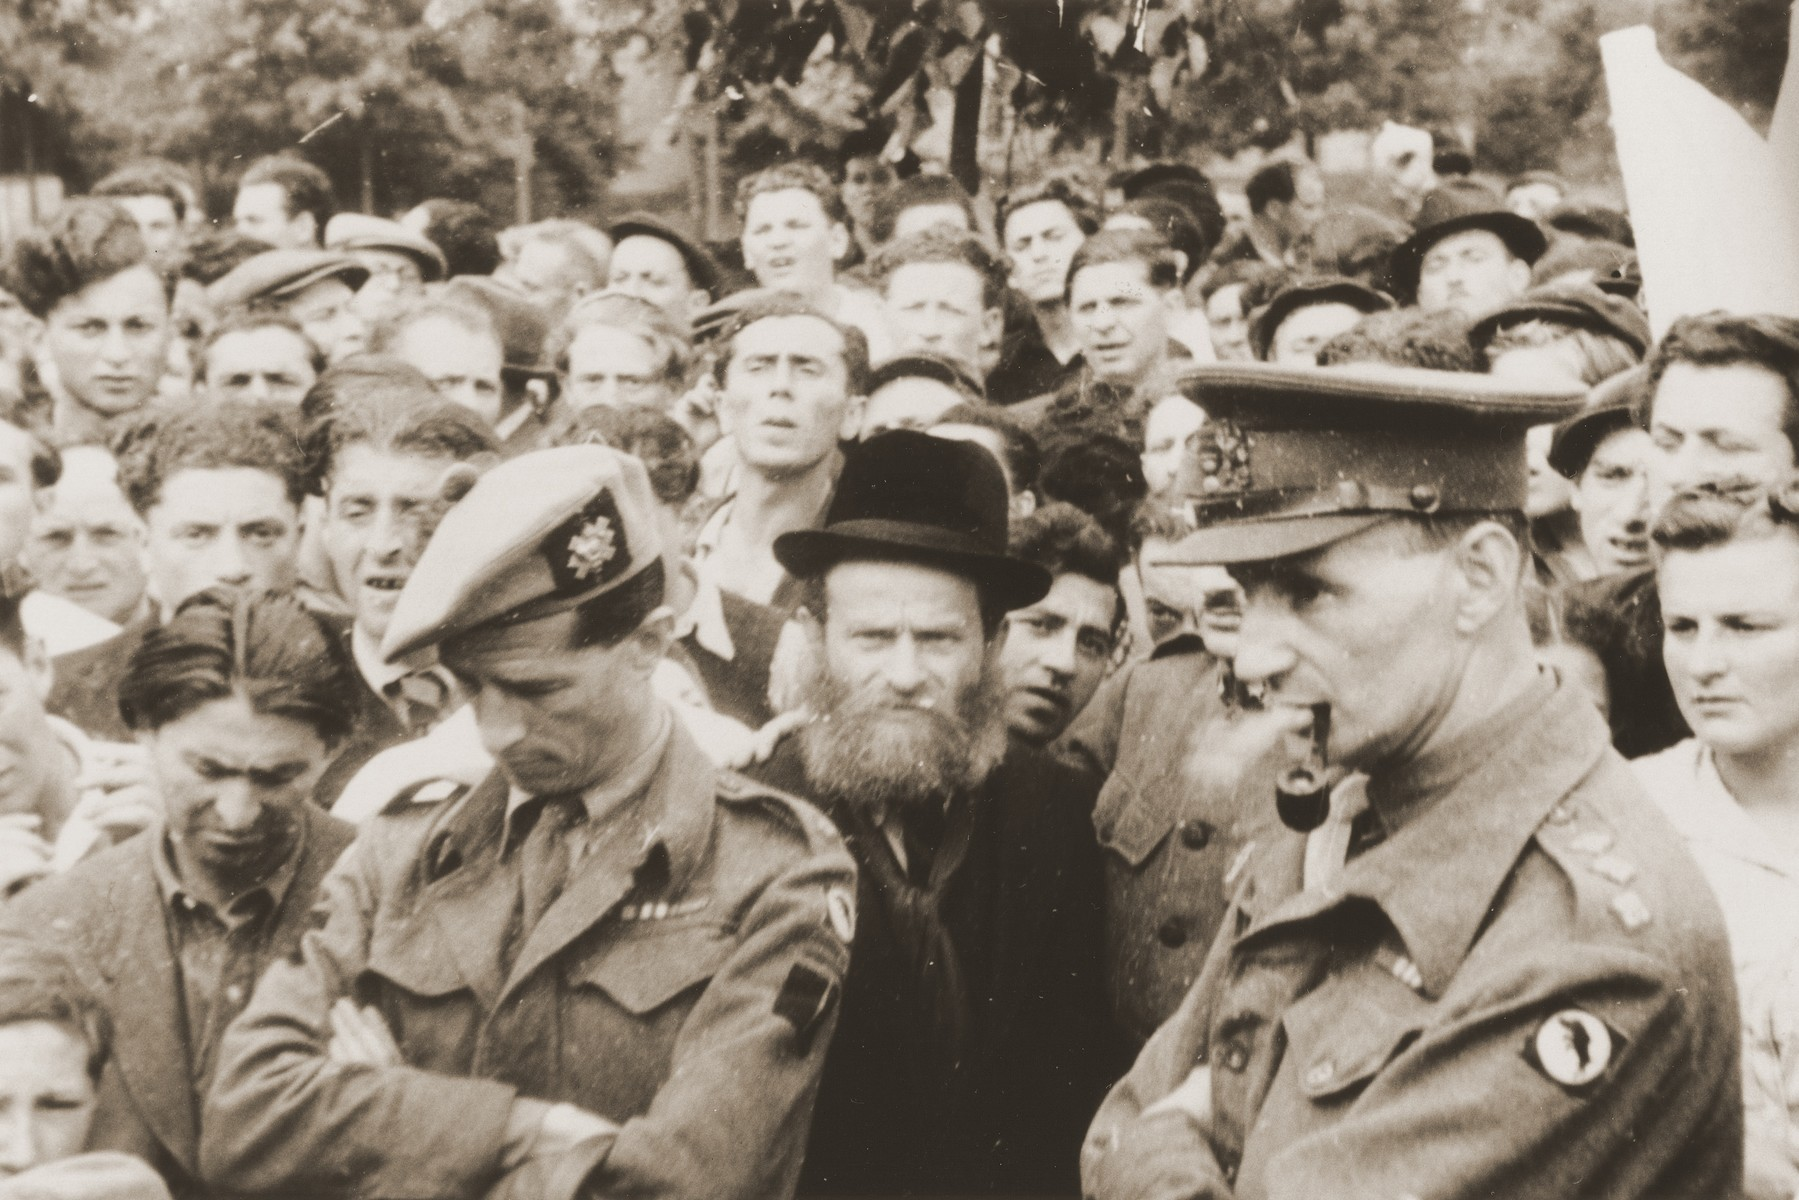 A crowd of Jewish DPs stand behind British soldiers at a ceremony or demonstration in the Bergen-Belsen displaced persons camp.